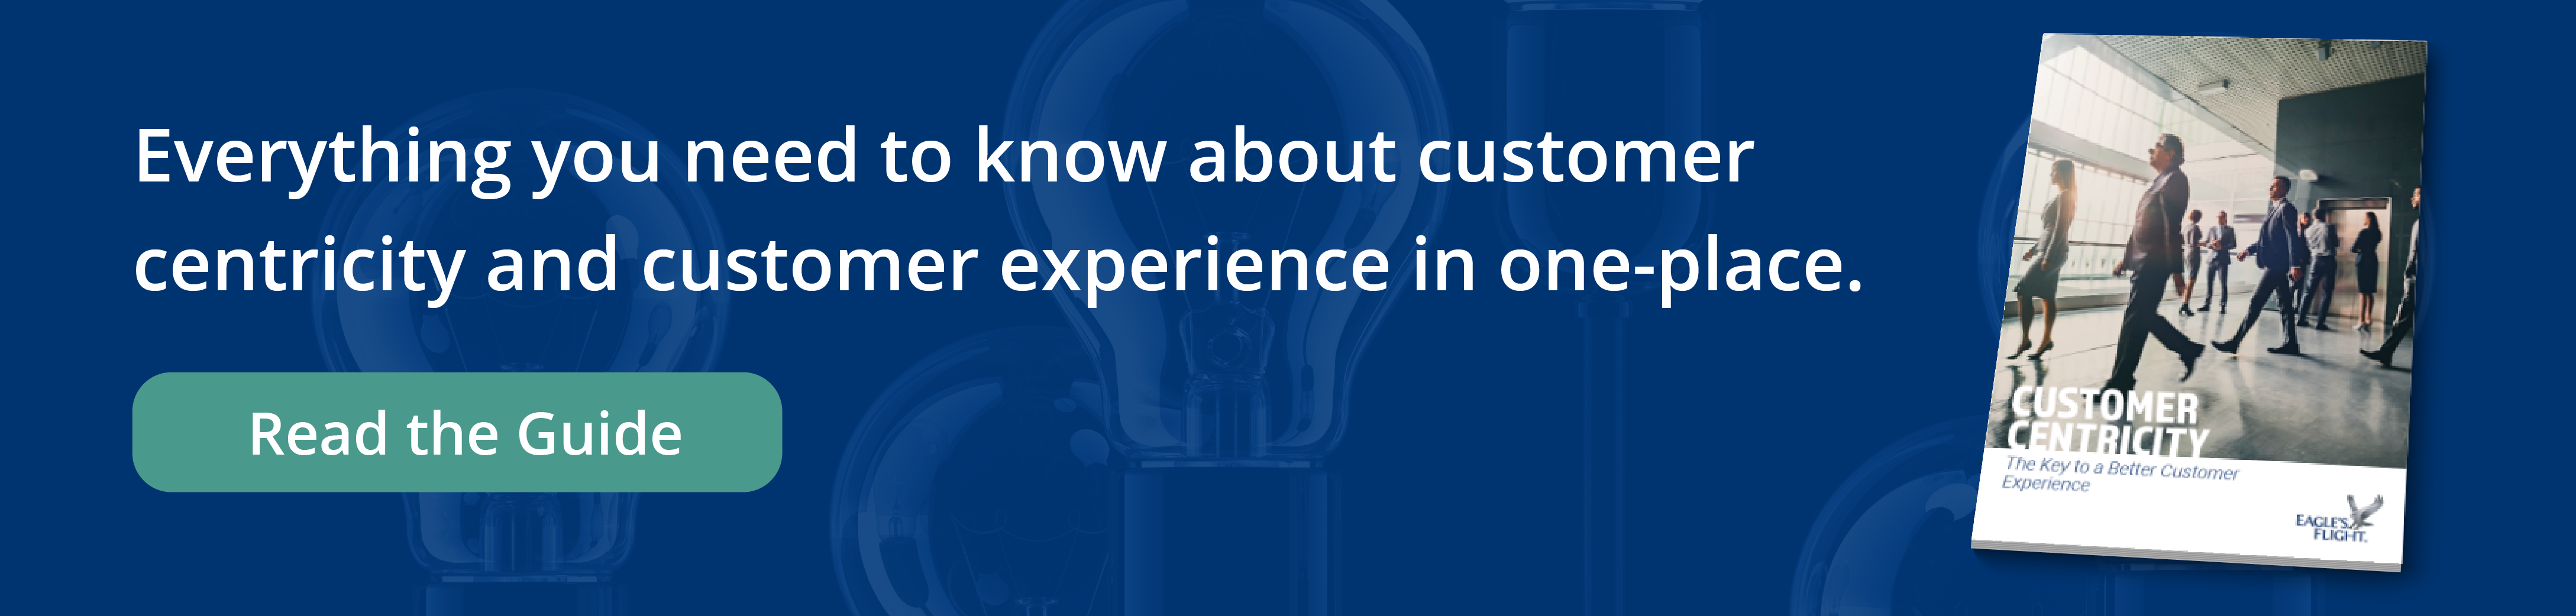 What Is Customer Centricity? The Key to a Better Customer Experience